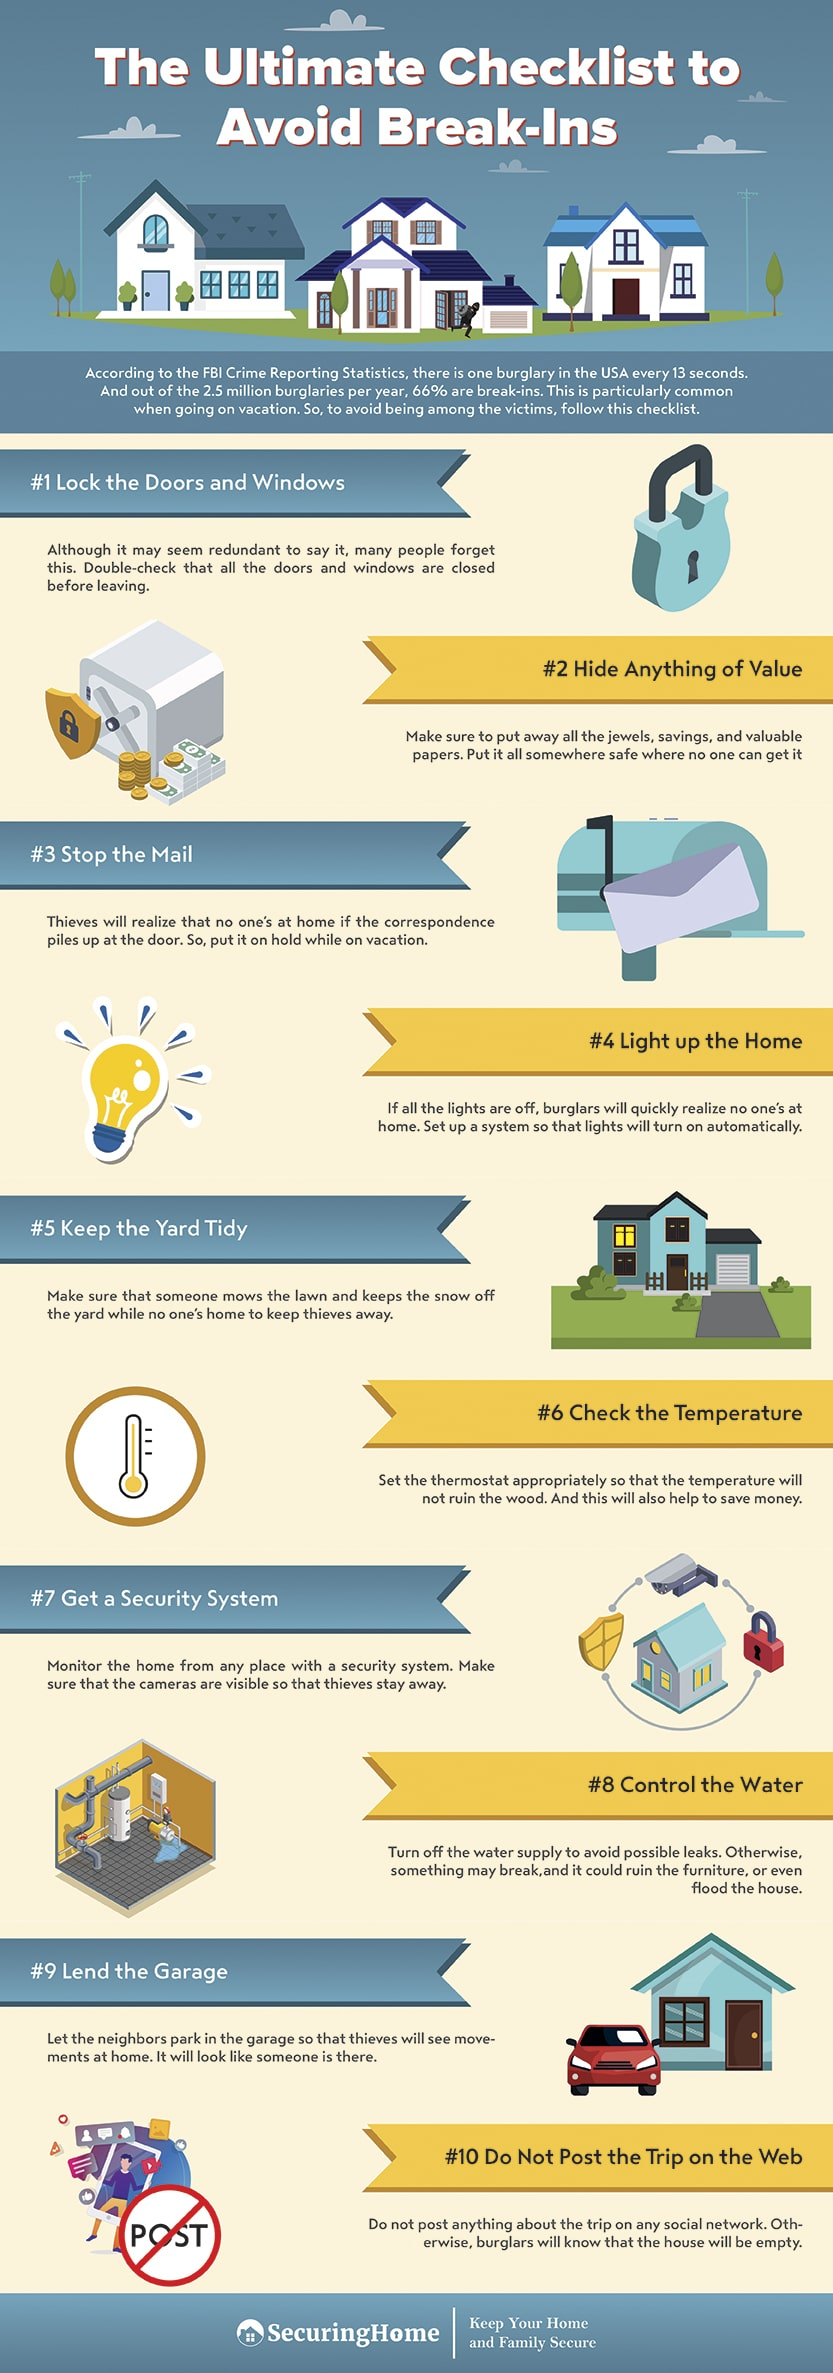 The Ultimate Checklist To Avoid Break-Ins Infographic